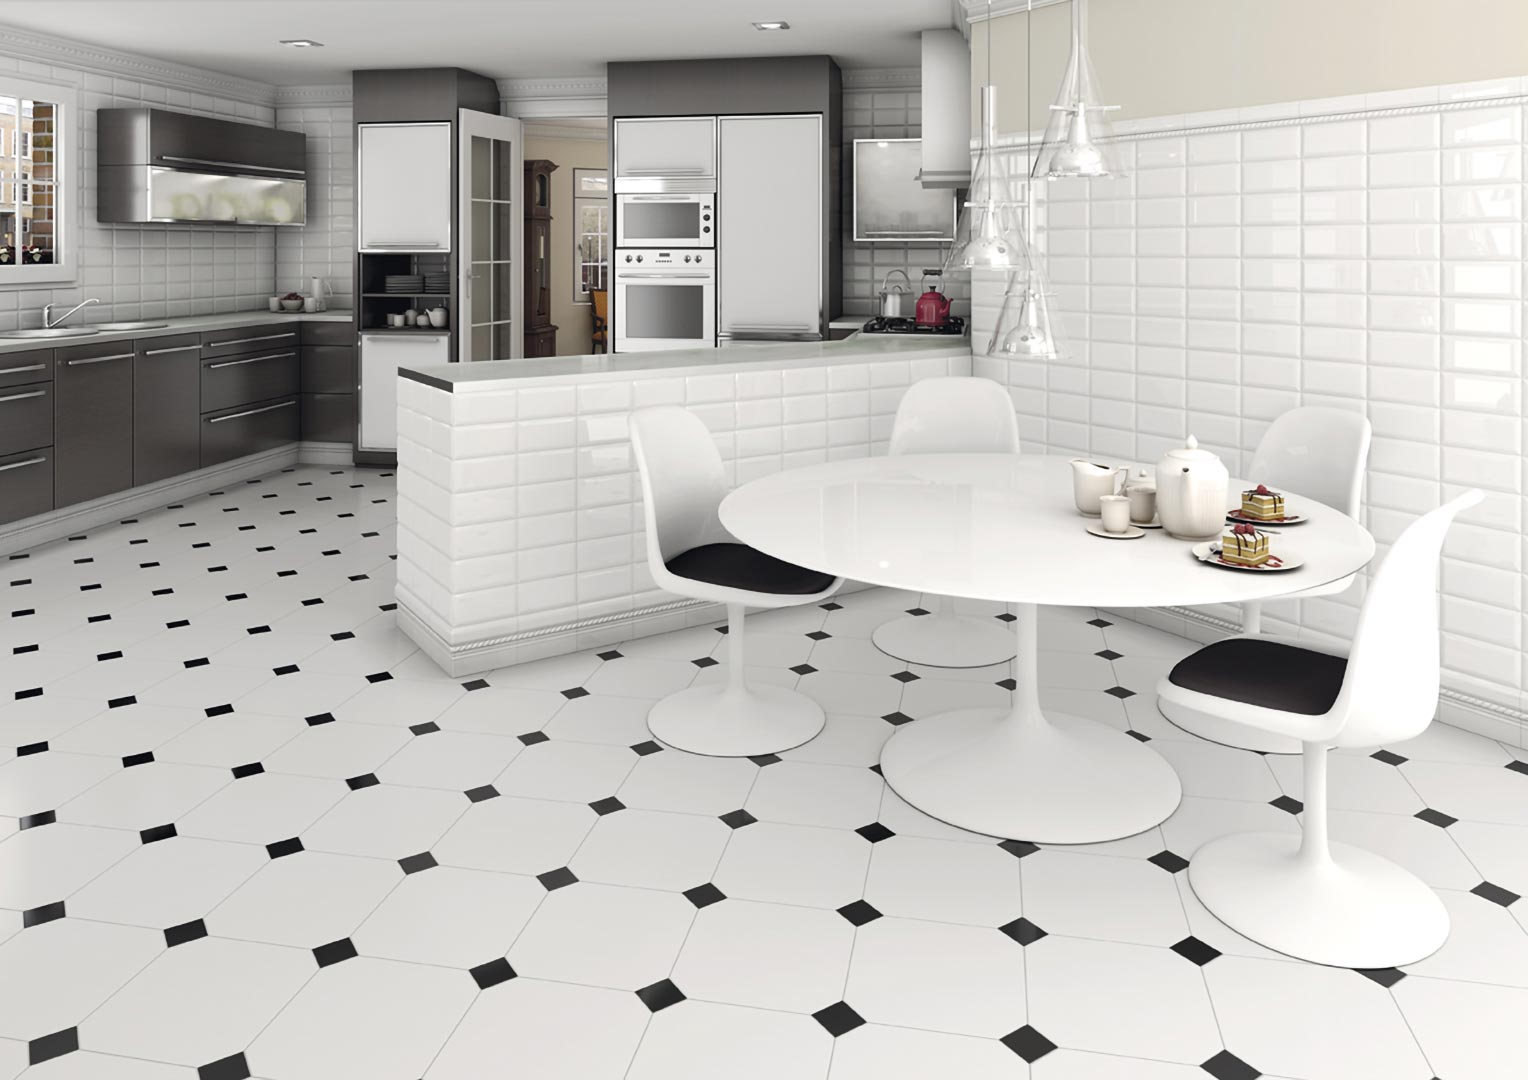 Ceramic heritage,monocolor for Kitchens | Mugat - rivoli